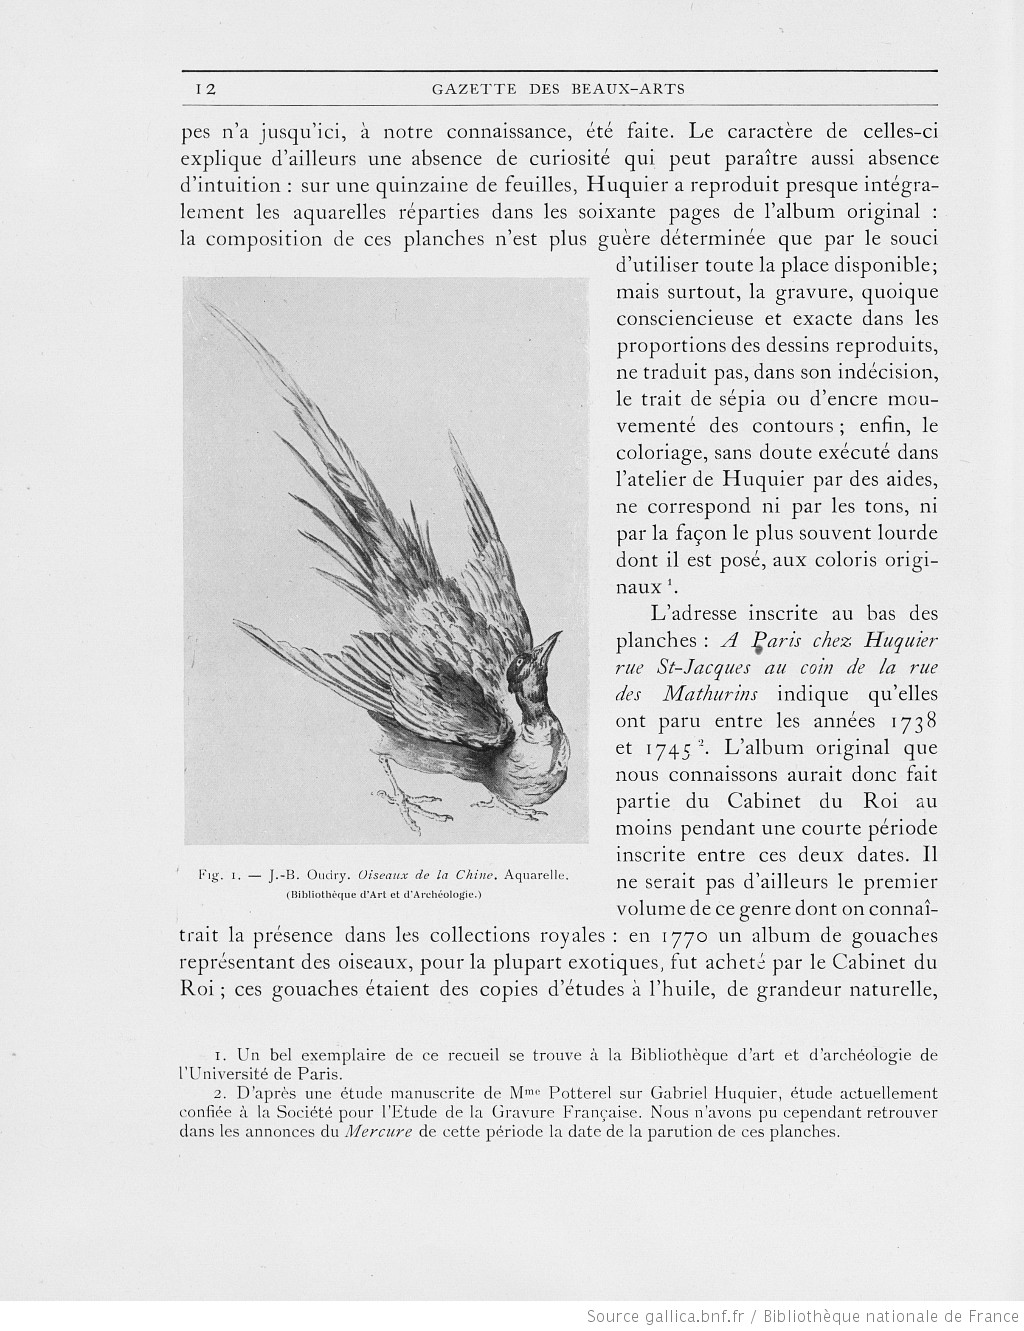 Gazette des beaux-arts (Paris. 1859)